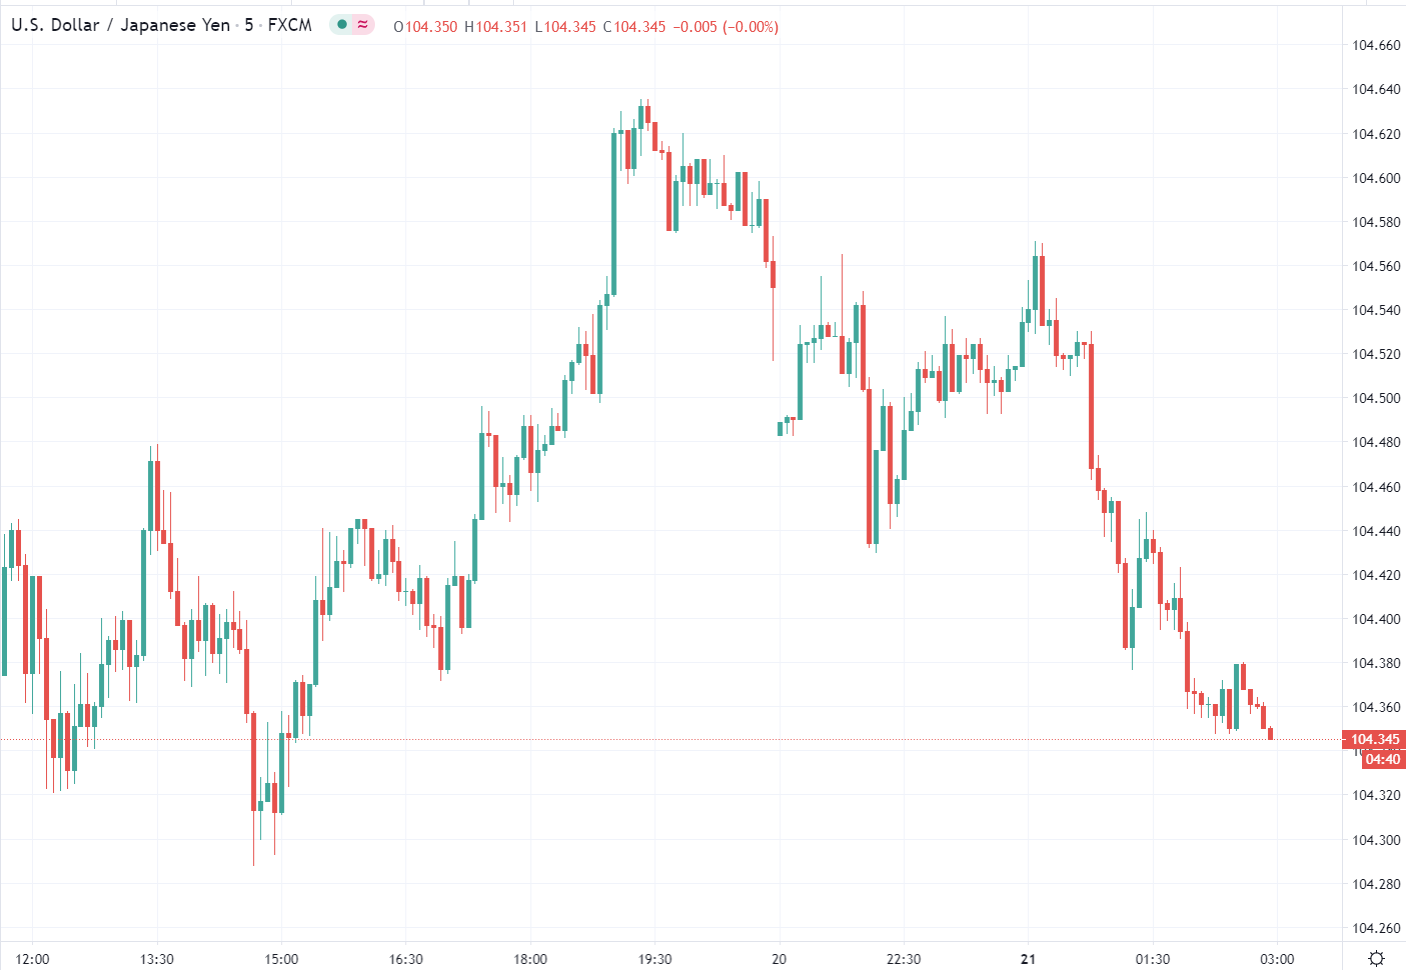 ForexLive Asia FX news wrap: Currencies catch a bid against the USD - ForexLive